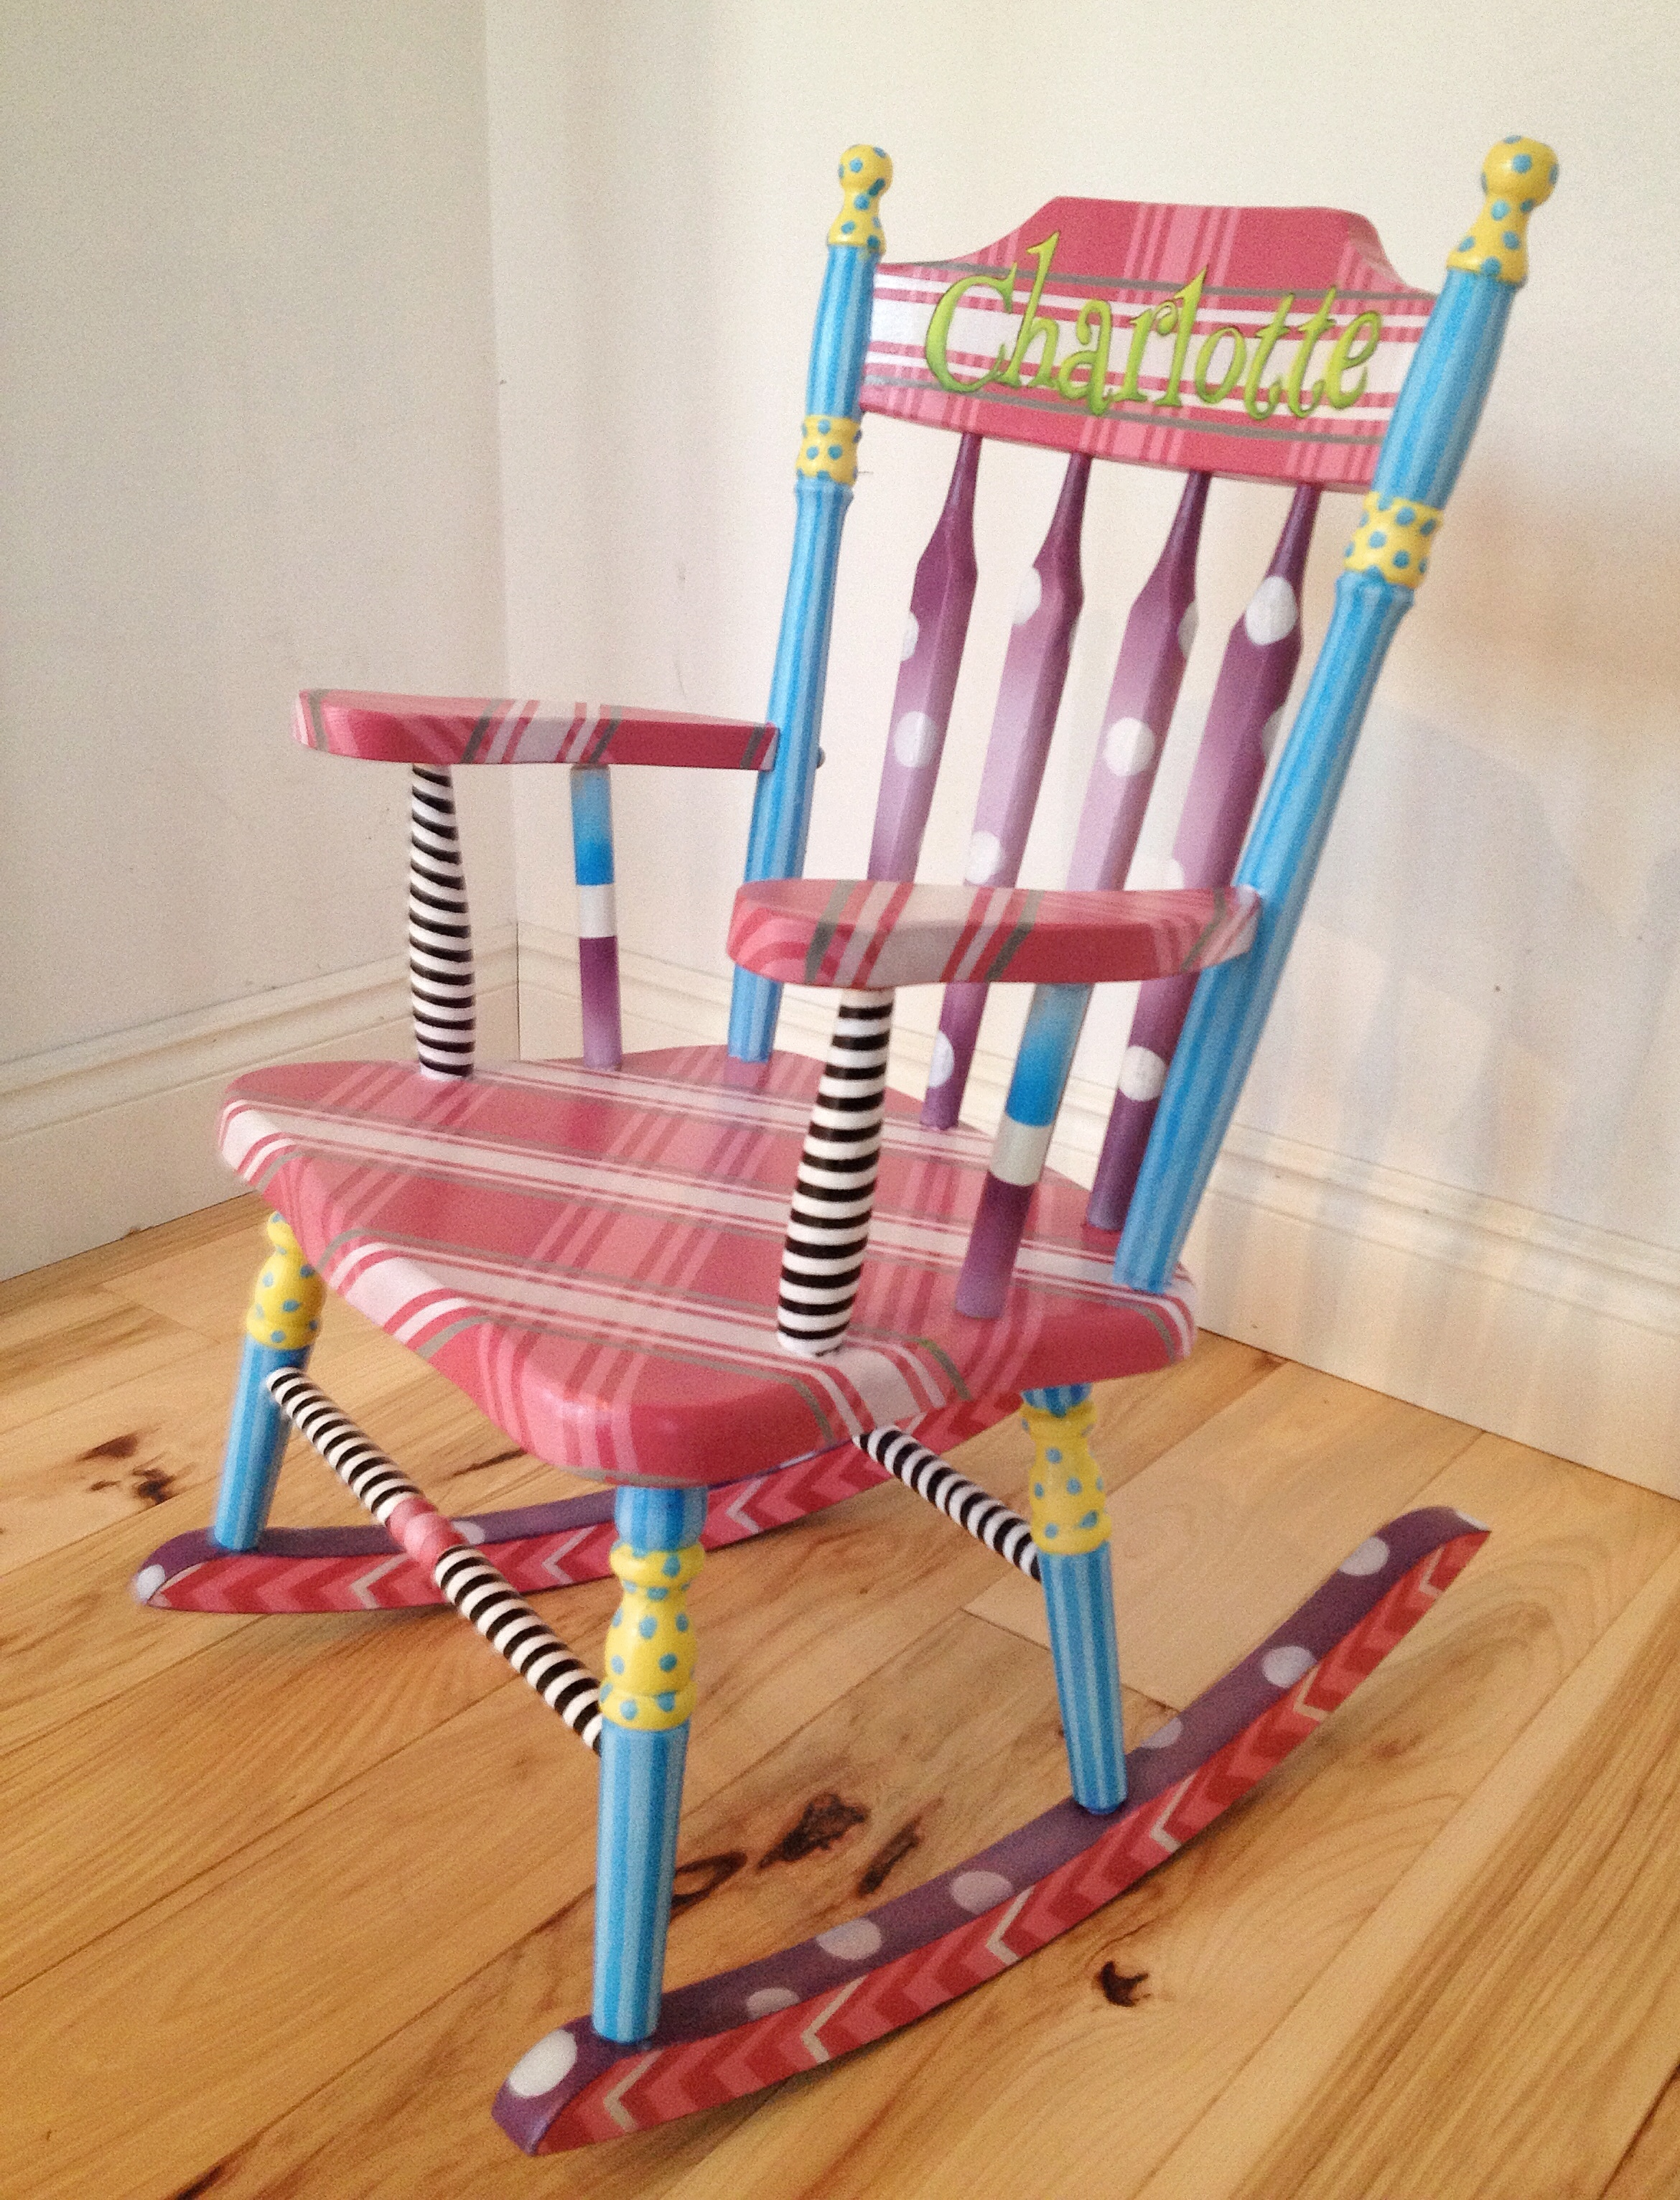 Charlotte's rocking chair